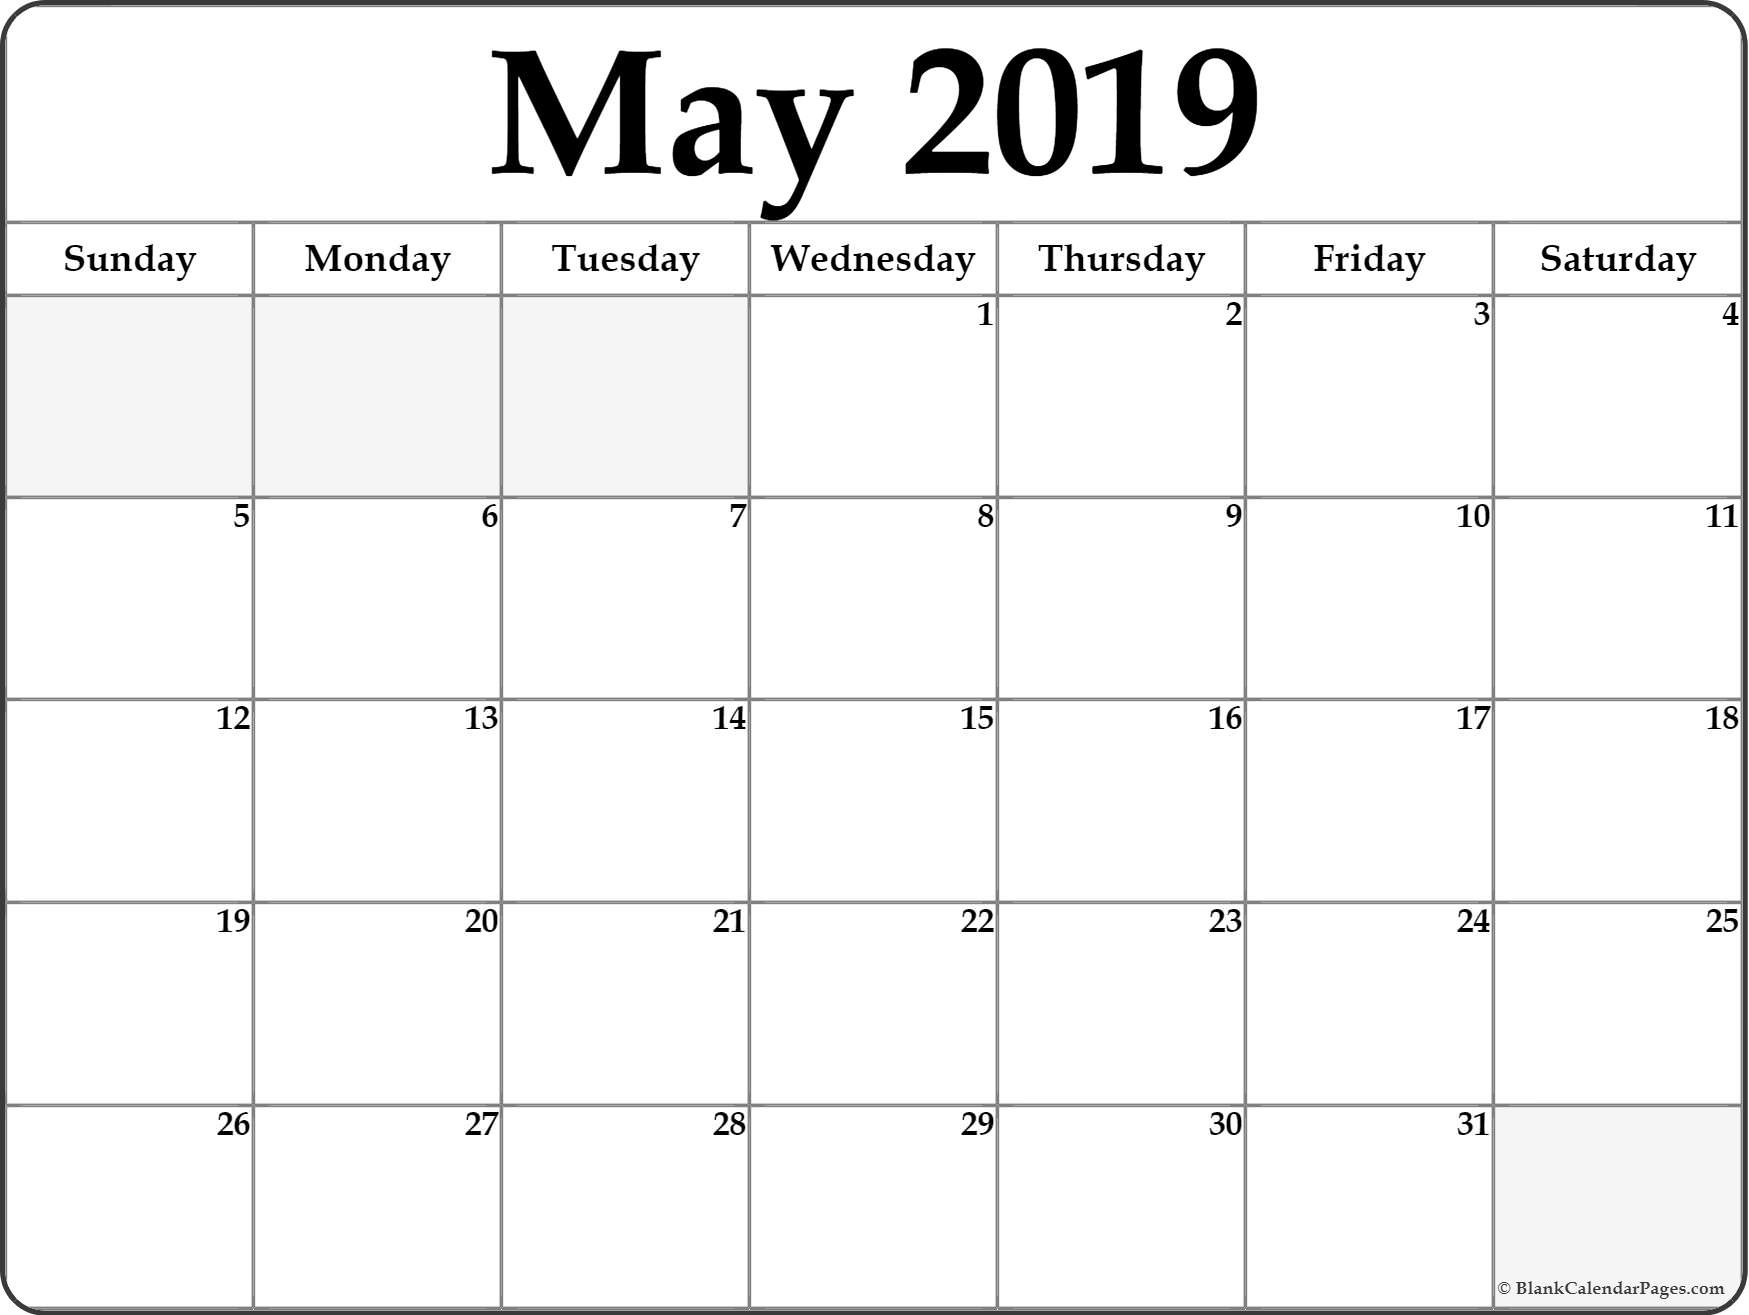 May 2019 Calendar | Free Printable Monthly Calendars-Month At A Glance Blank Calendar